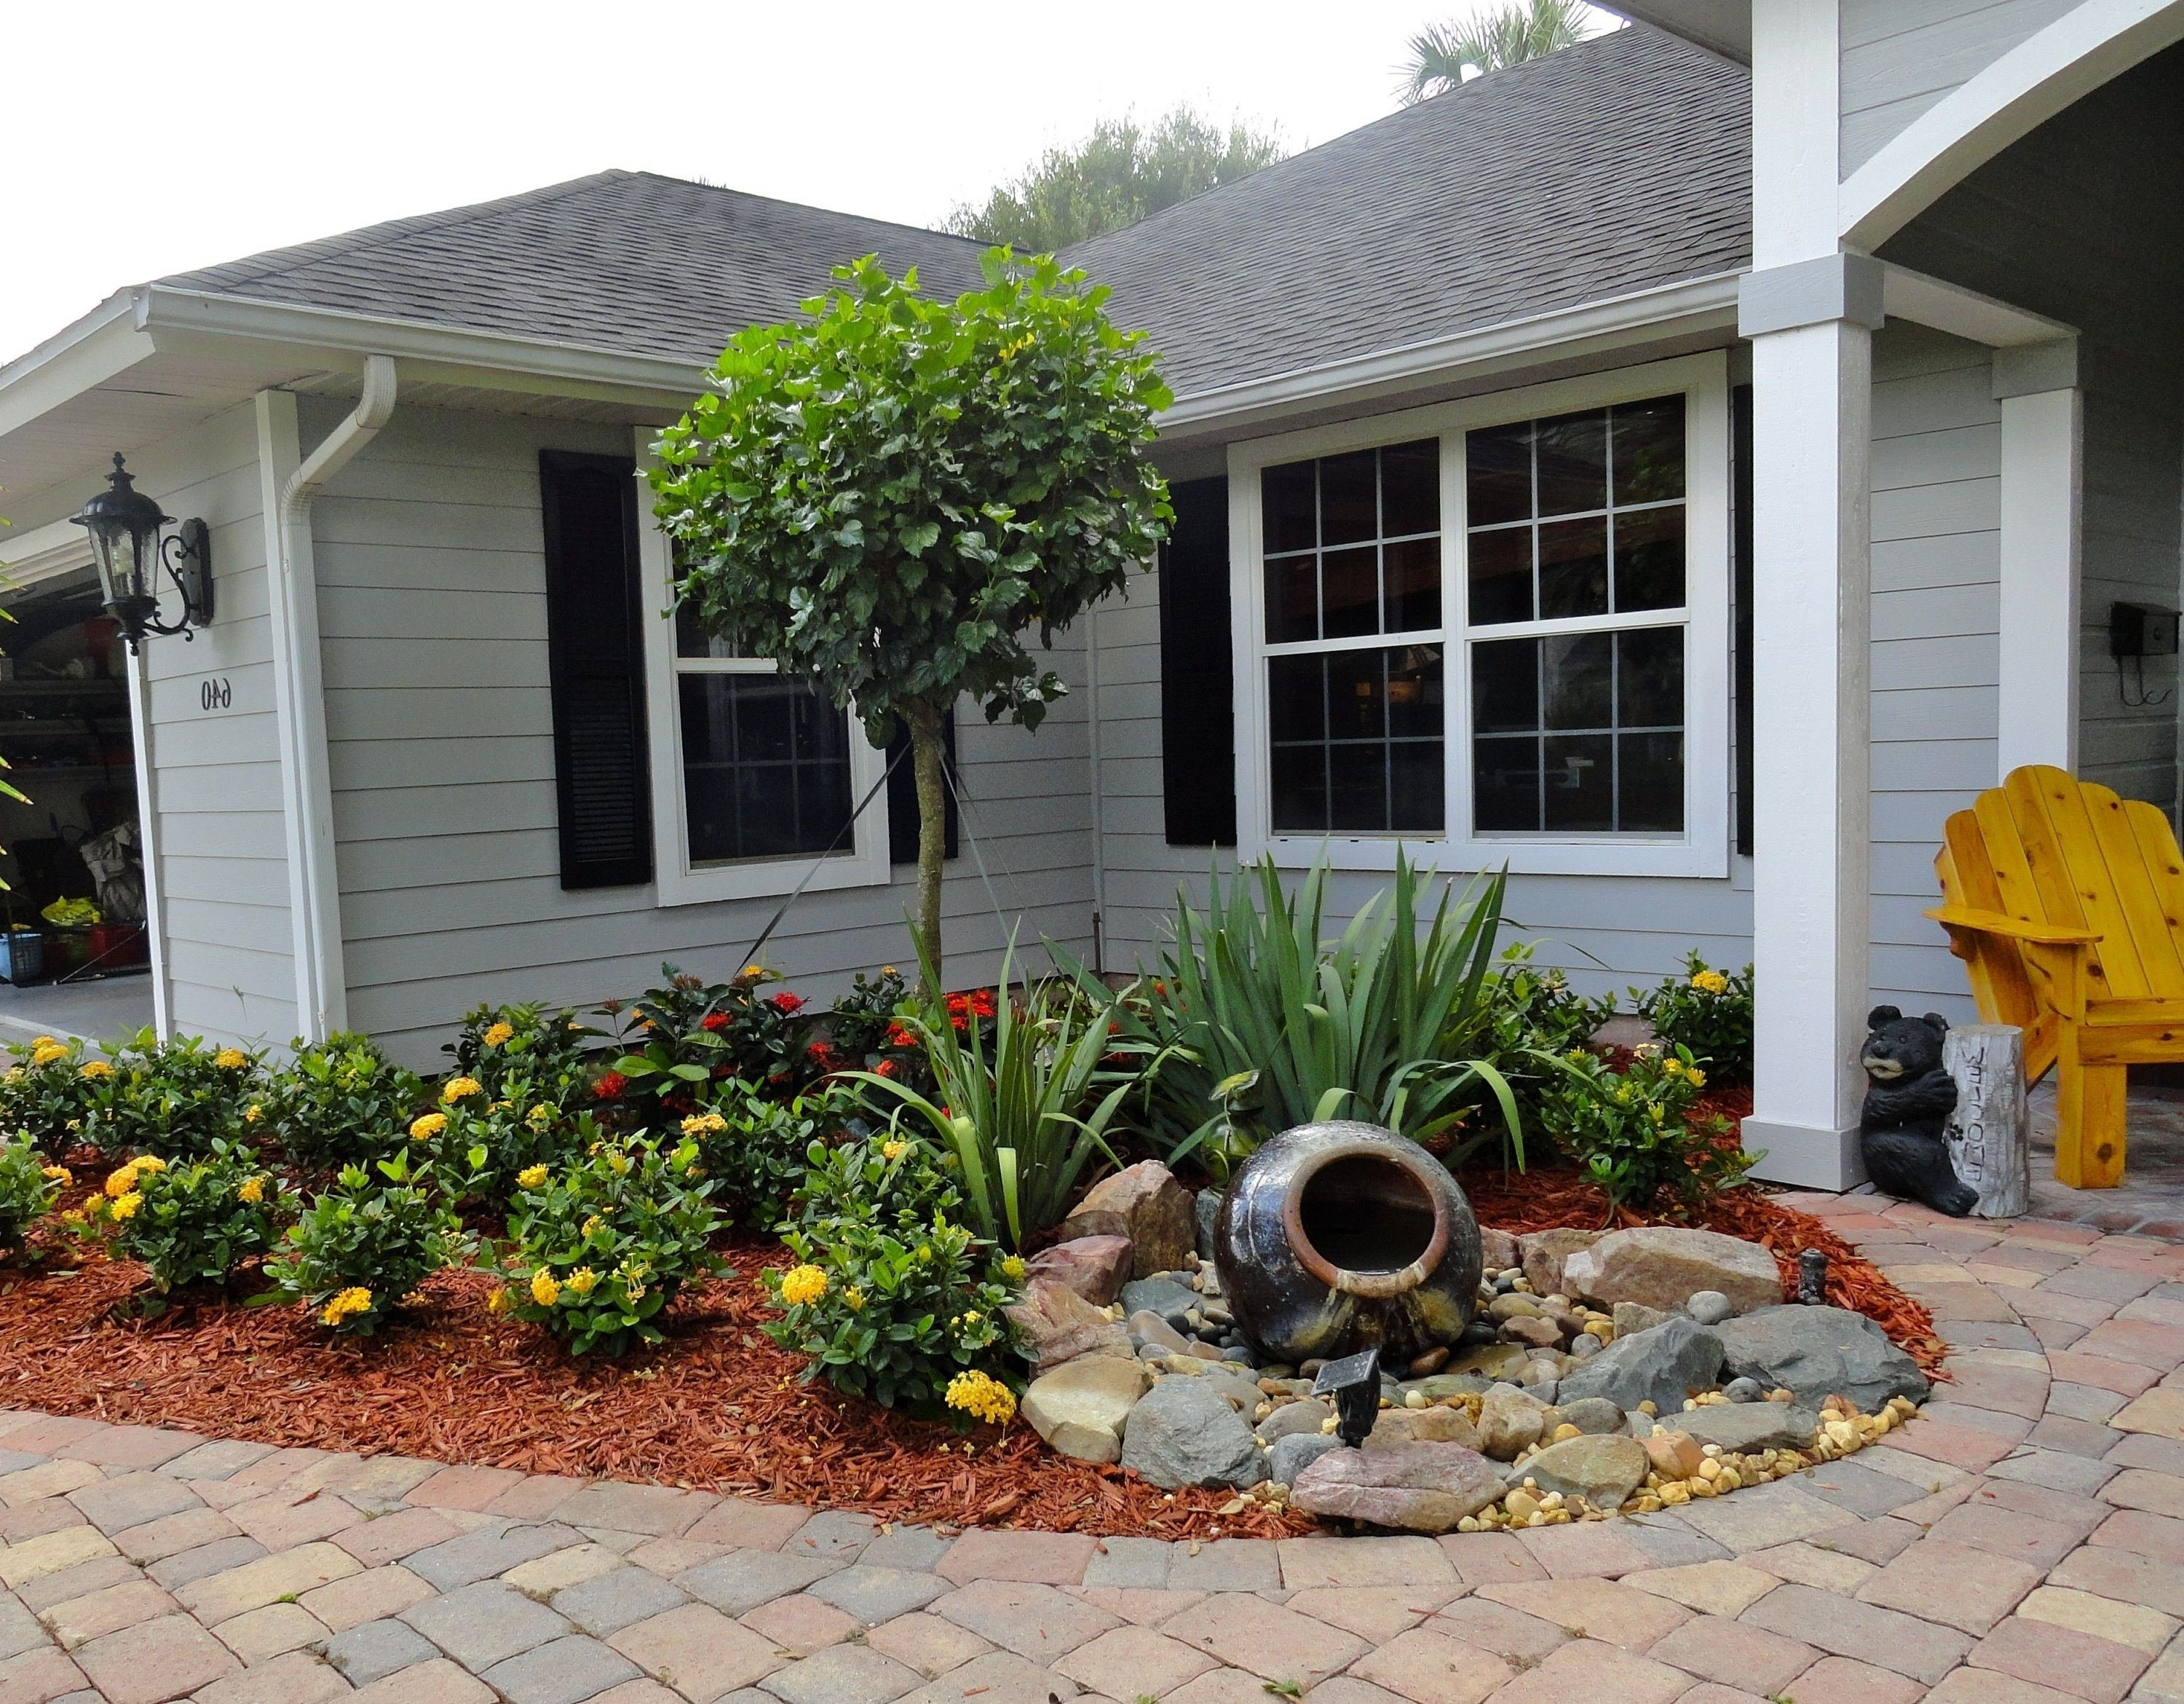 10 Spectacular Front Yard Landscaping Ideas On A Budget small front garden ideas on a budget best of serene low bud 1 2020